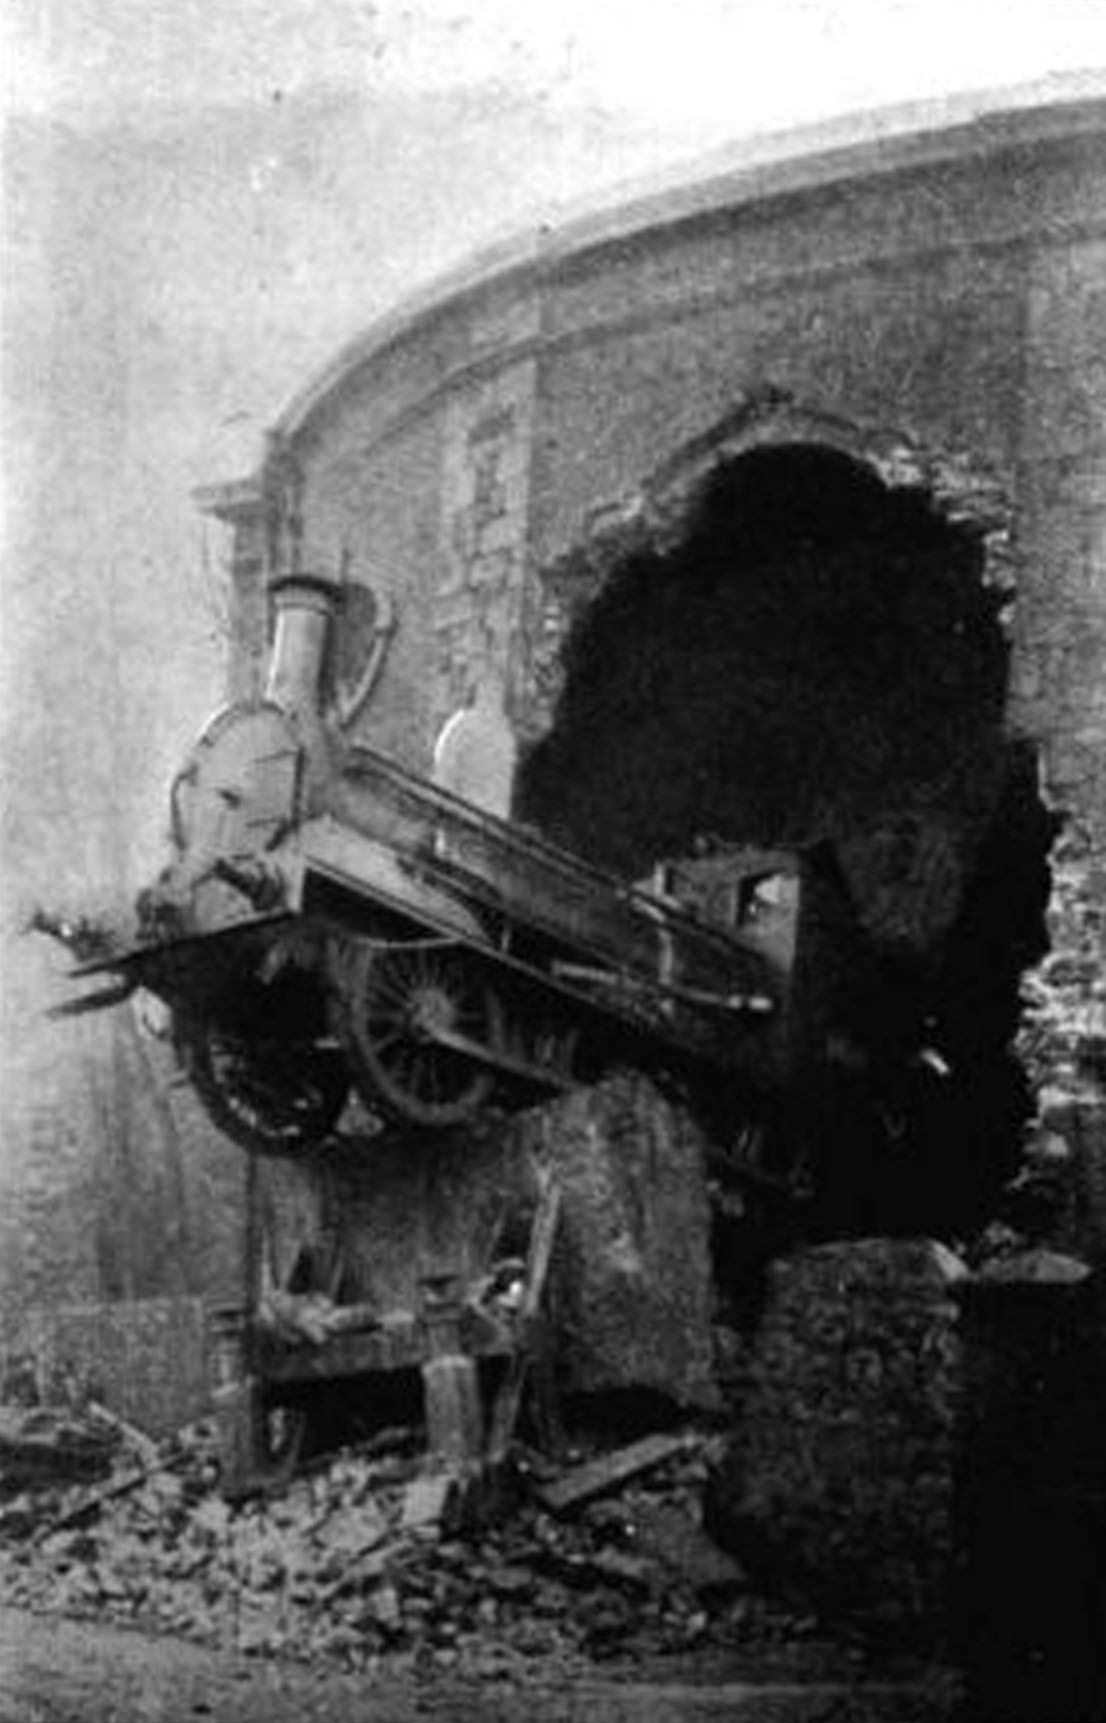 http://upload.wikimedia.org/wikipedia/en/c/c4/Harcourt_St_train_crash_1900.jpg